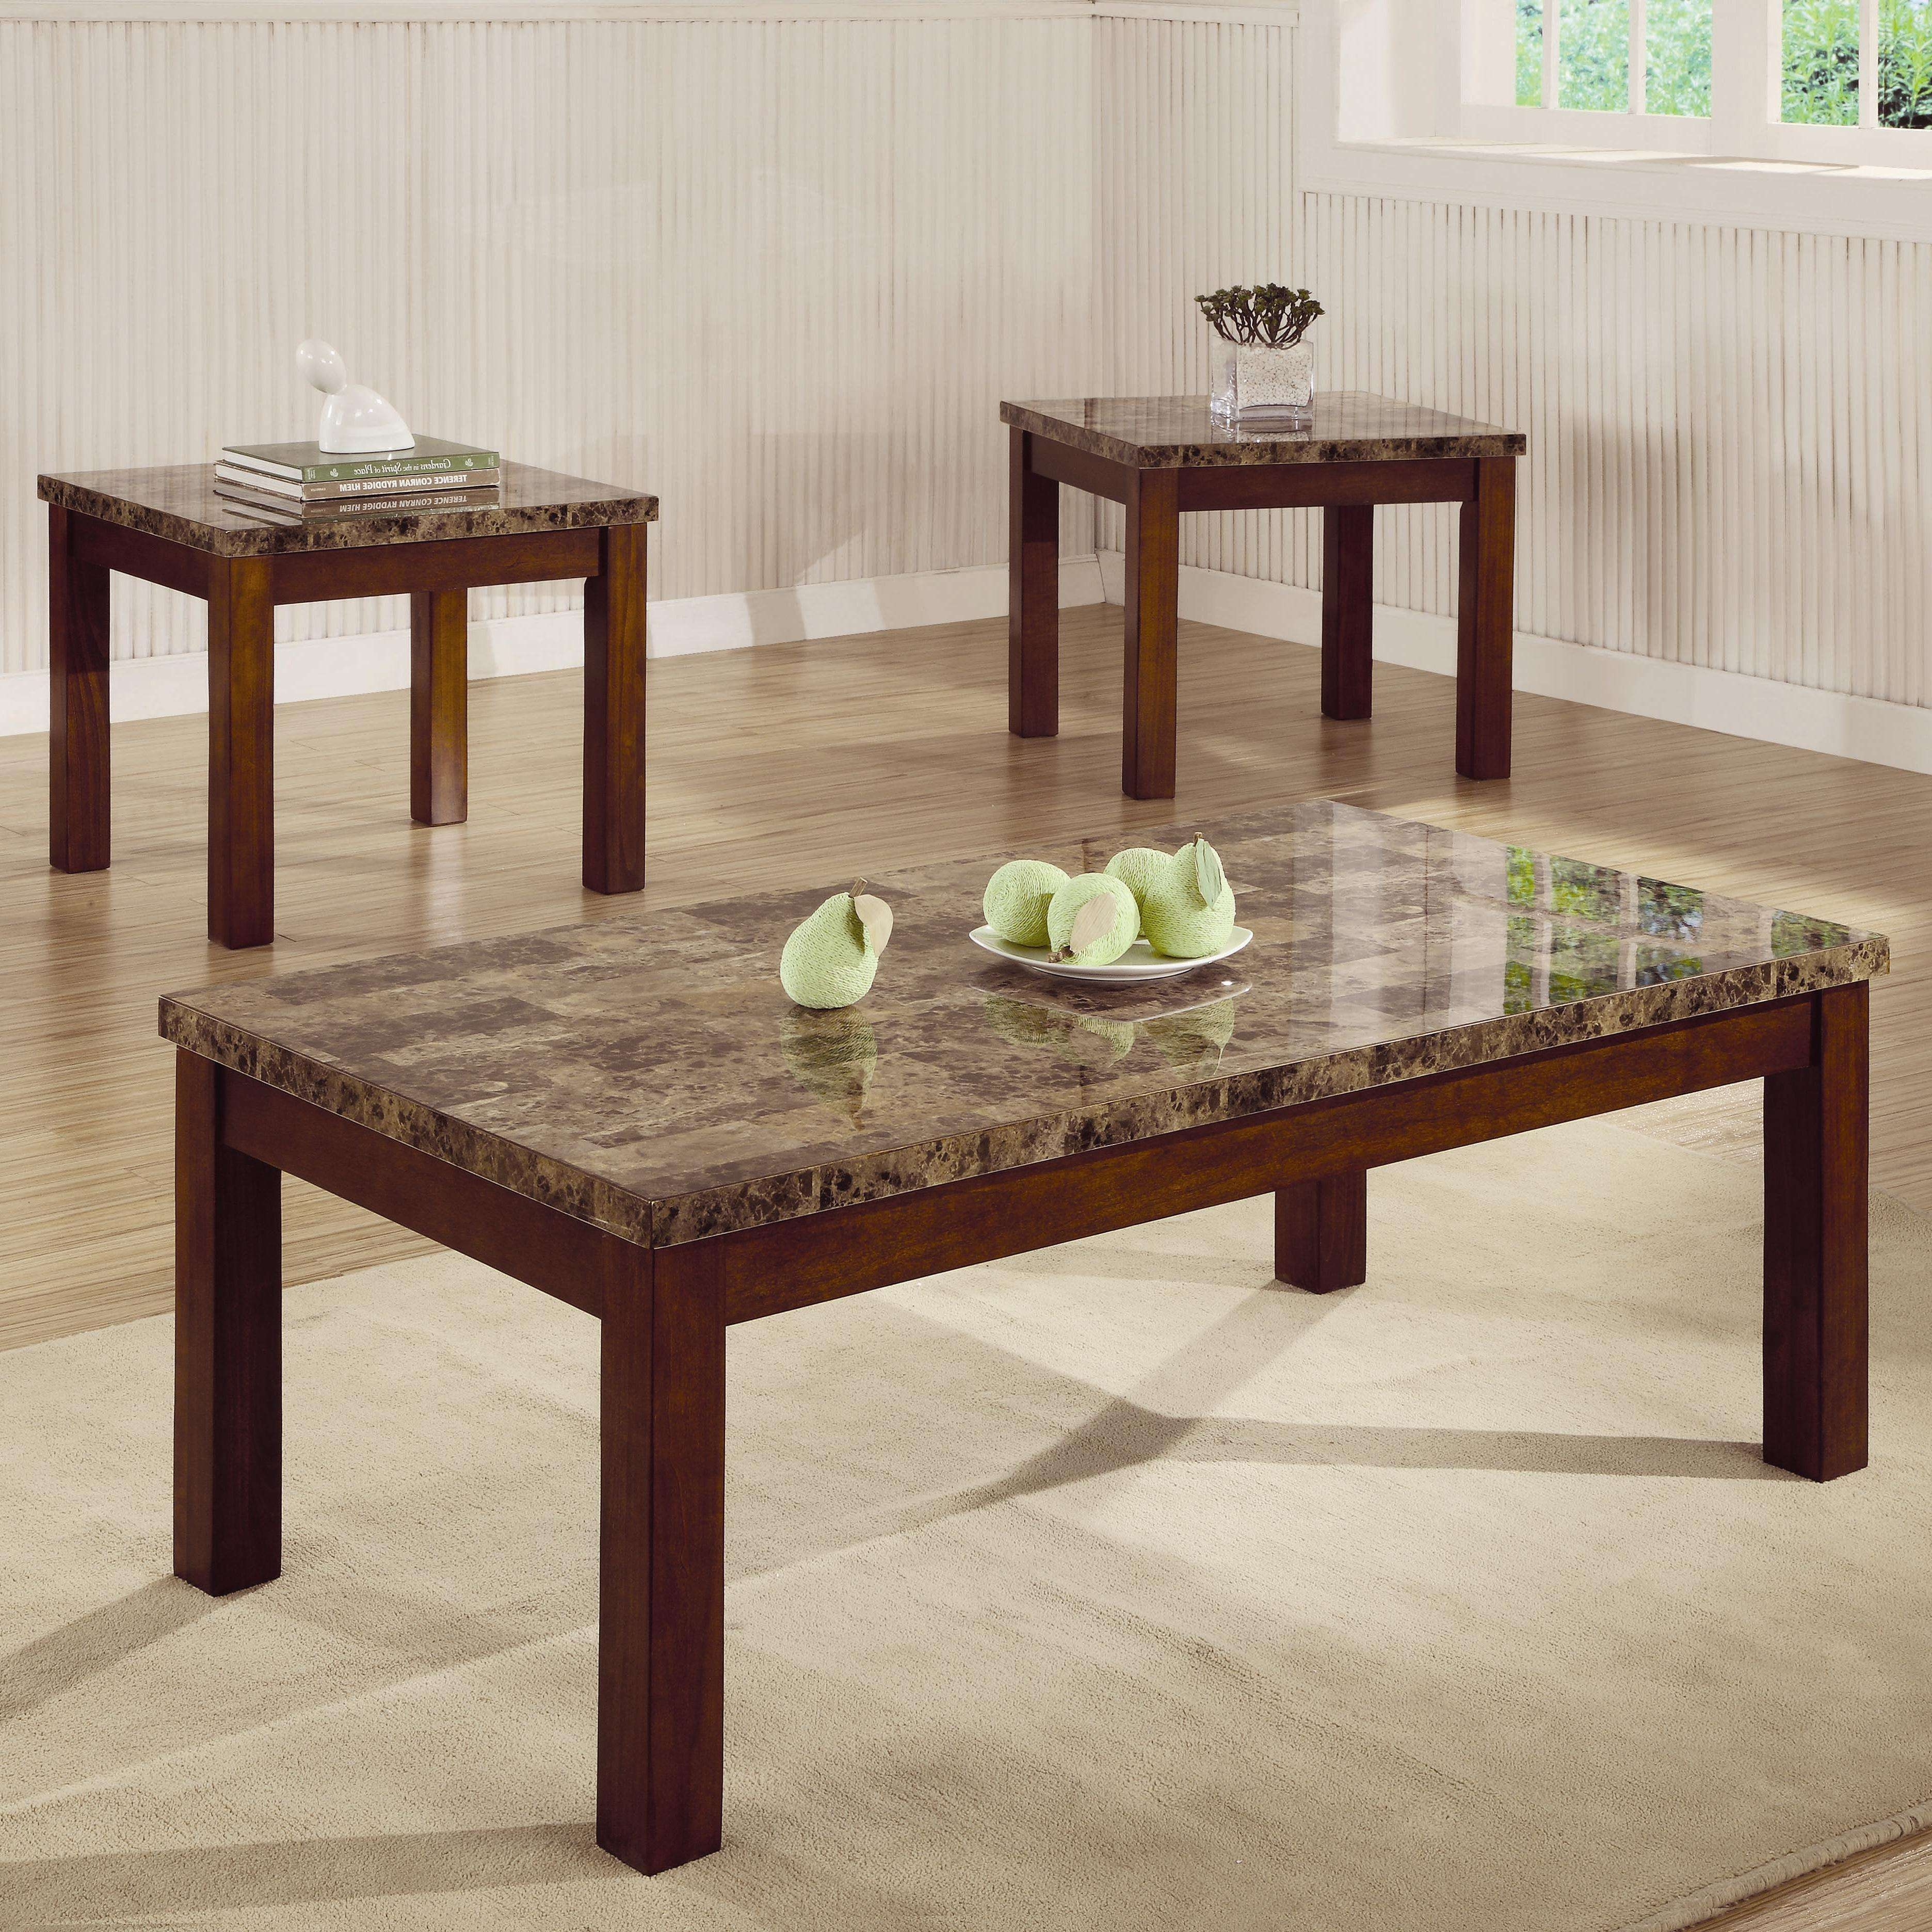 Current Rustic Looking Coffee Tables In Coffee Table : Wonderful Rustic Coffee Table Square Coffee Table (View 14 of 20)